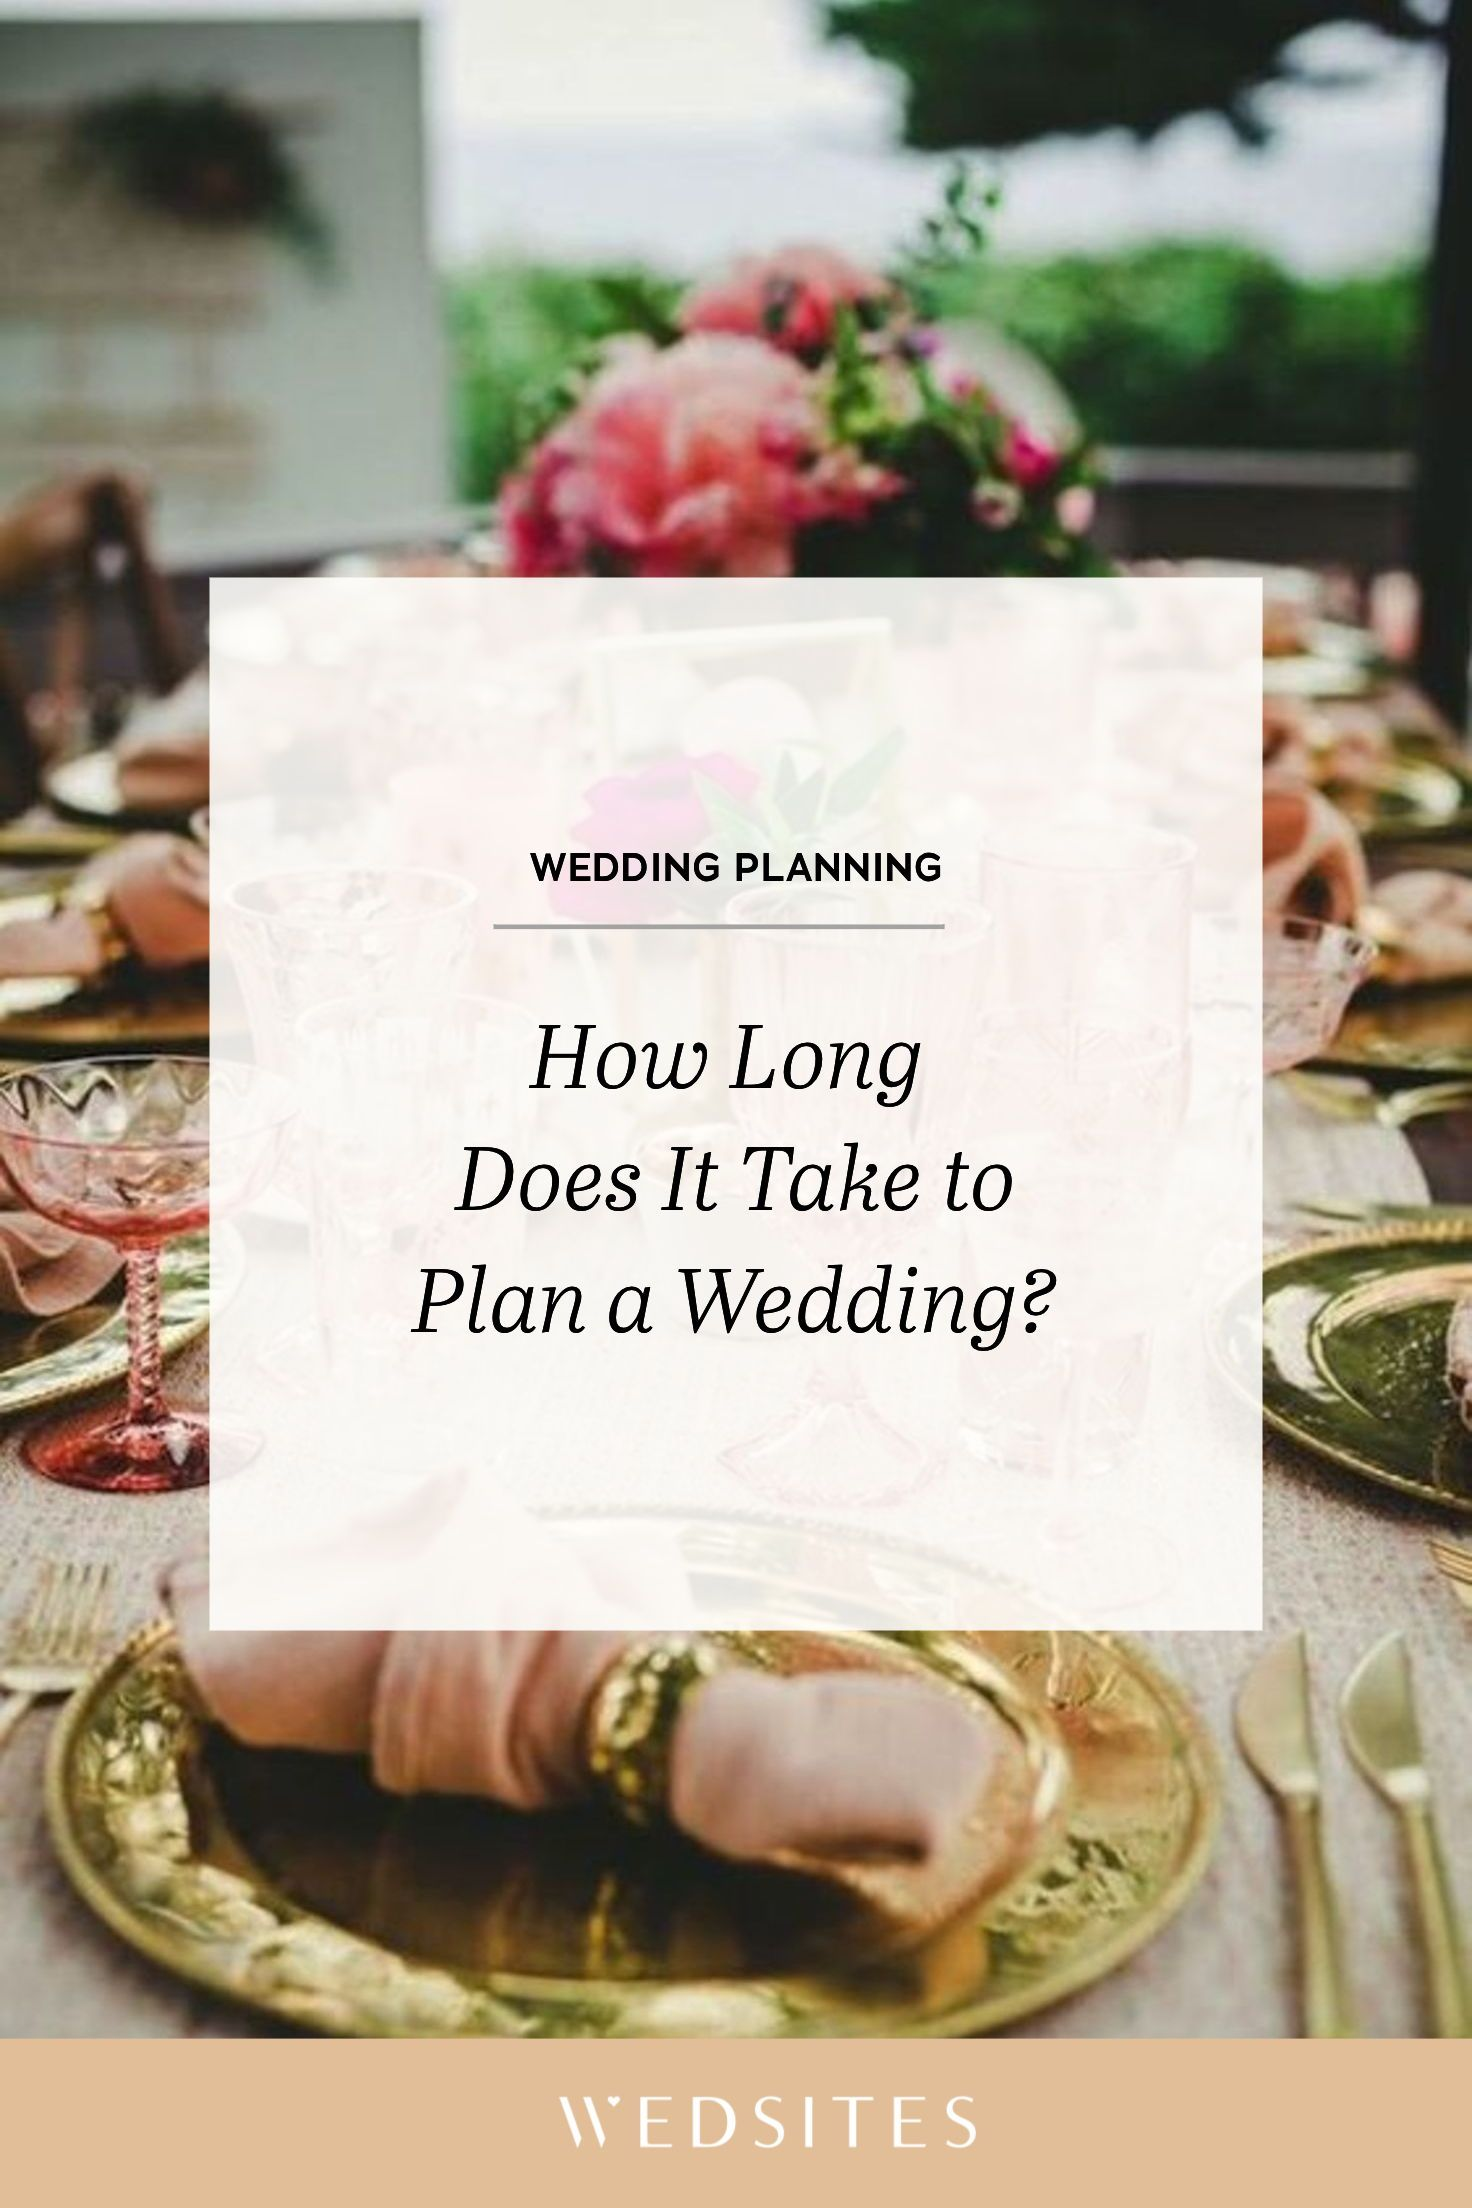 How Long Does It Take To Plan A Wedding 6 Important Things To Take Into Consideration In 2020 Wedding Planning Wedding Planning Stress Wedding Planning Advice